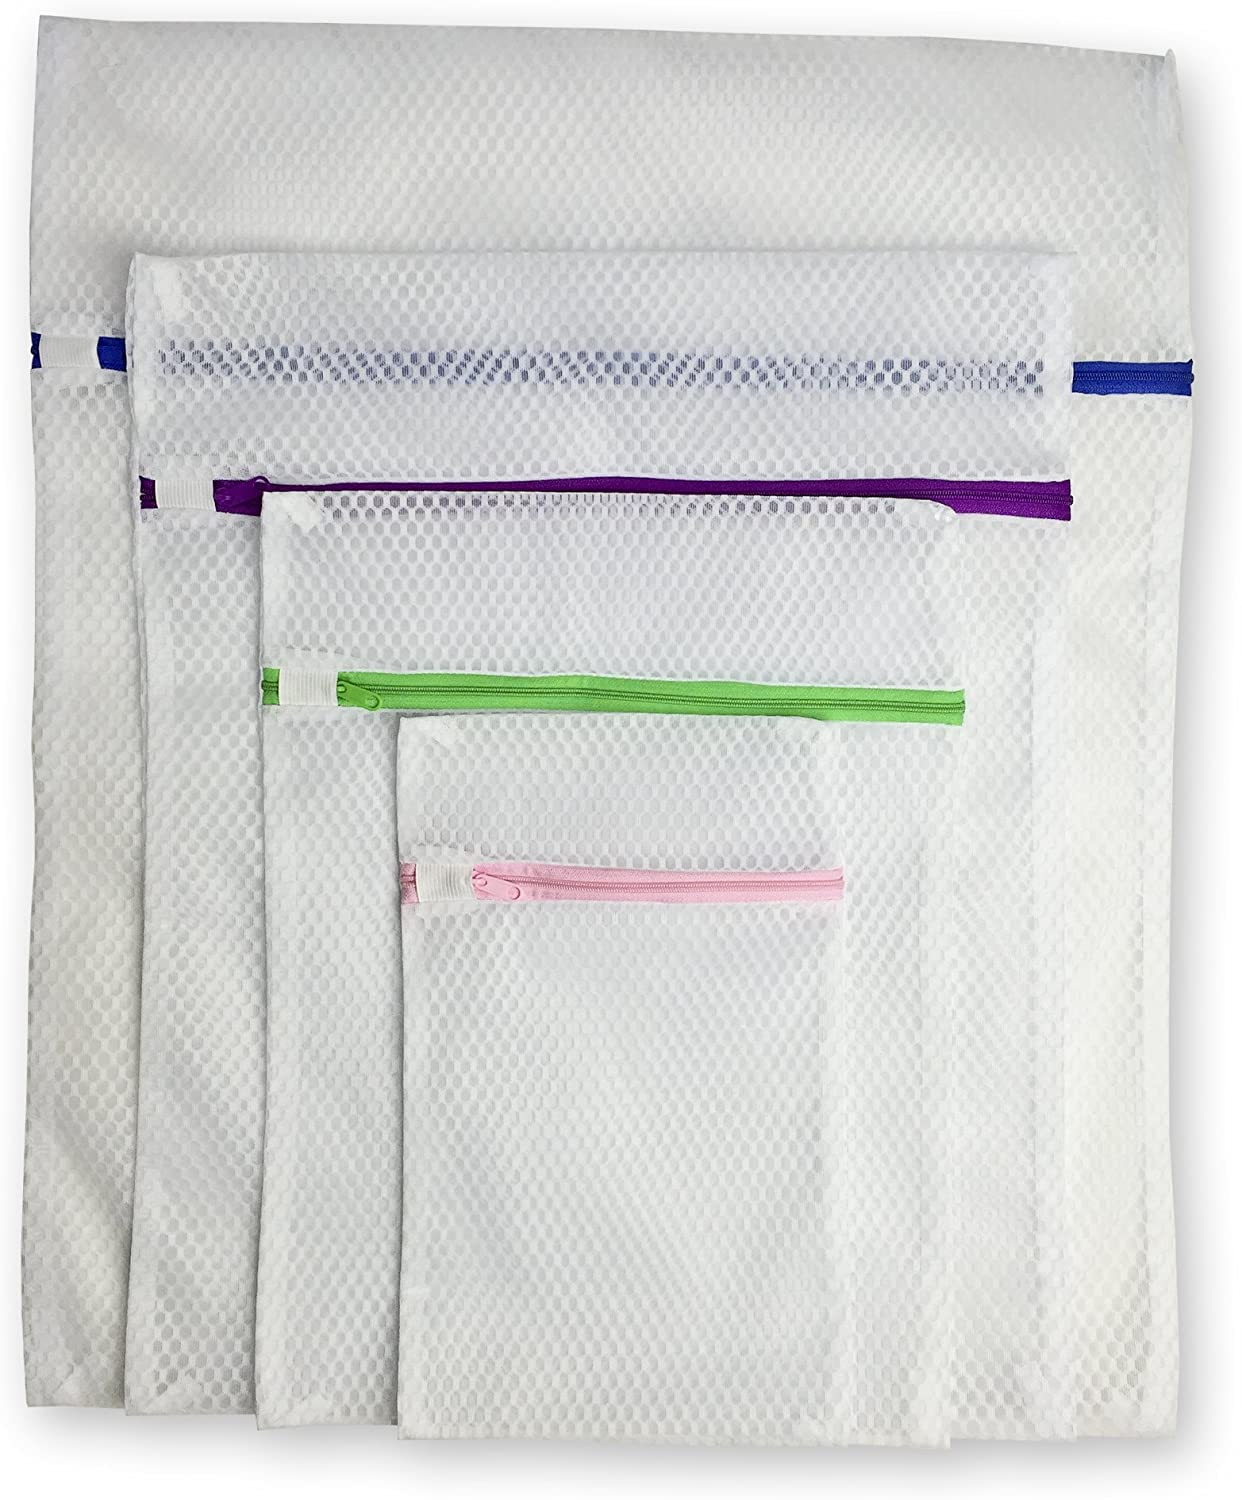 Laundry Shield Lingerie Bags for Laundry (Set of 4) - Bonus Ebook with Purchase - Extend and Protect the Life of Your Clothes with Our Mesh Delicates Laundry Bags